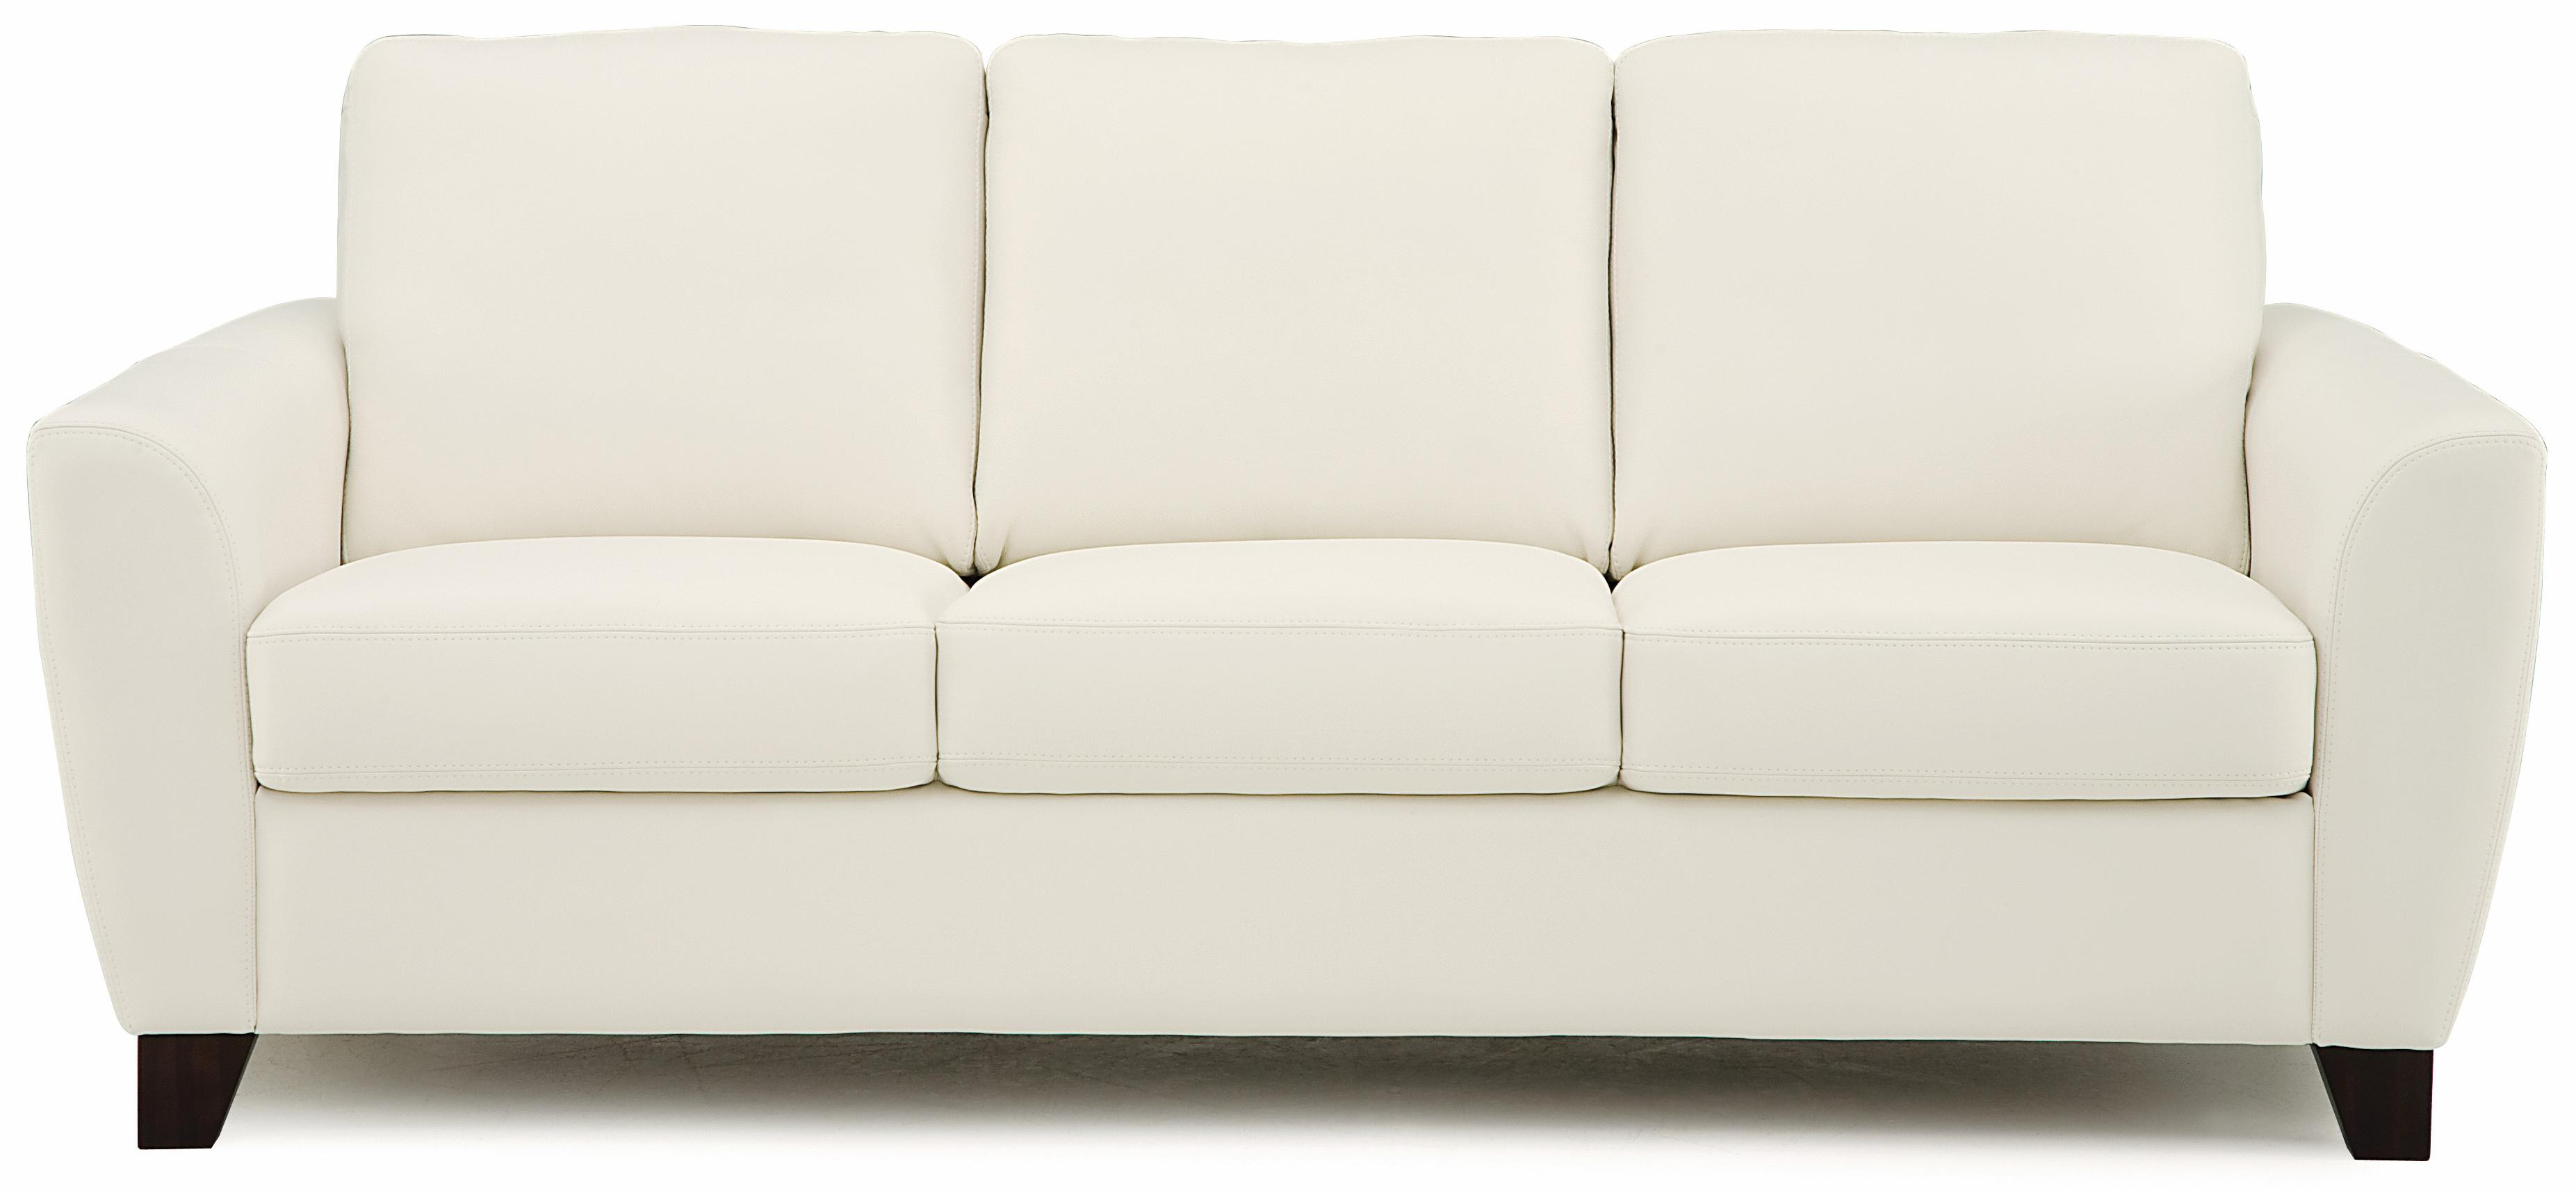 Palliser Marymount 77332 01 Contemporary Stationary Sofa